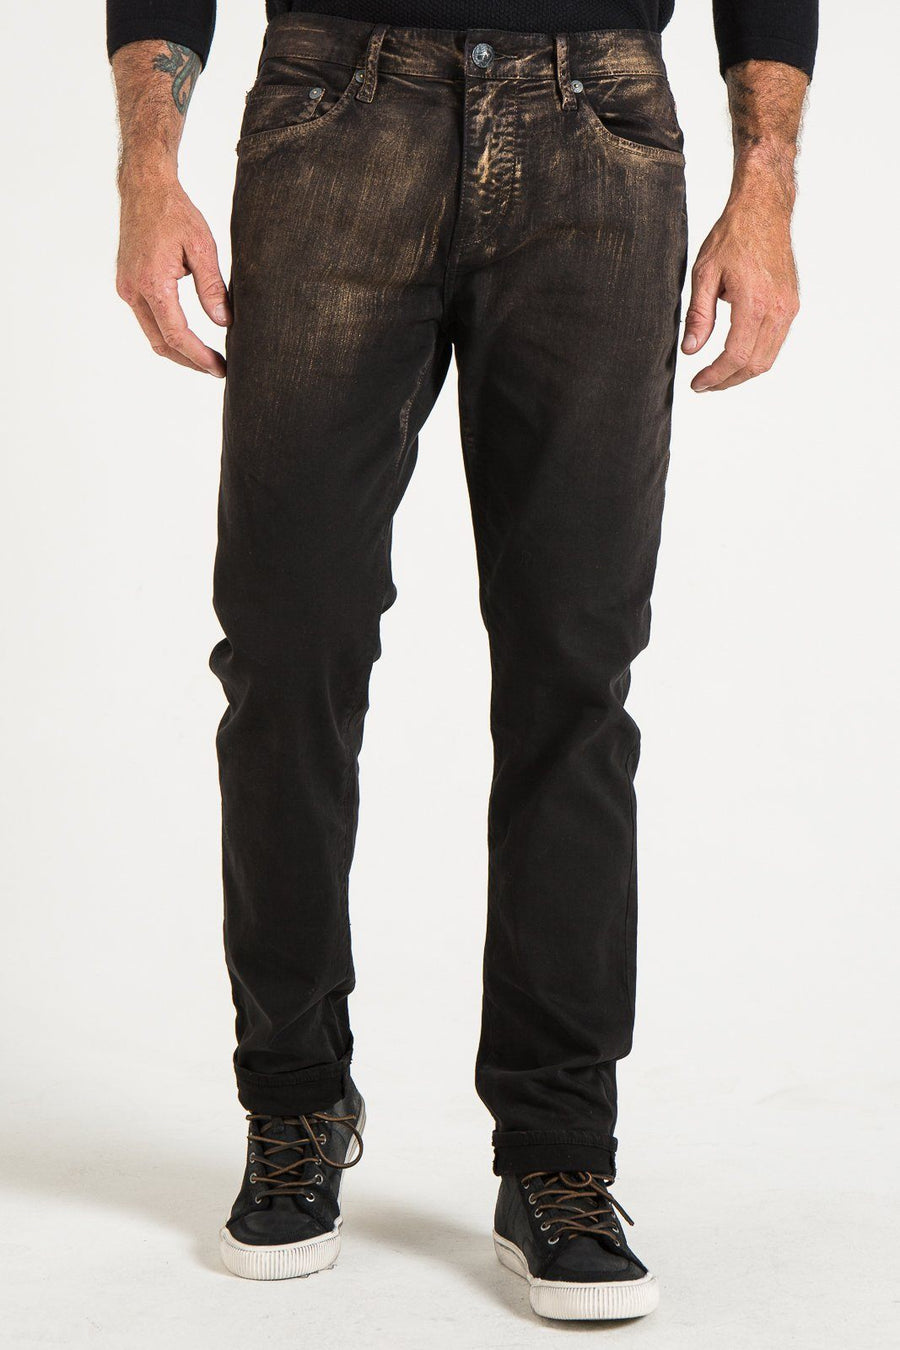 DENIM RIGGINS TAPER IN BRONZE